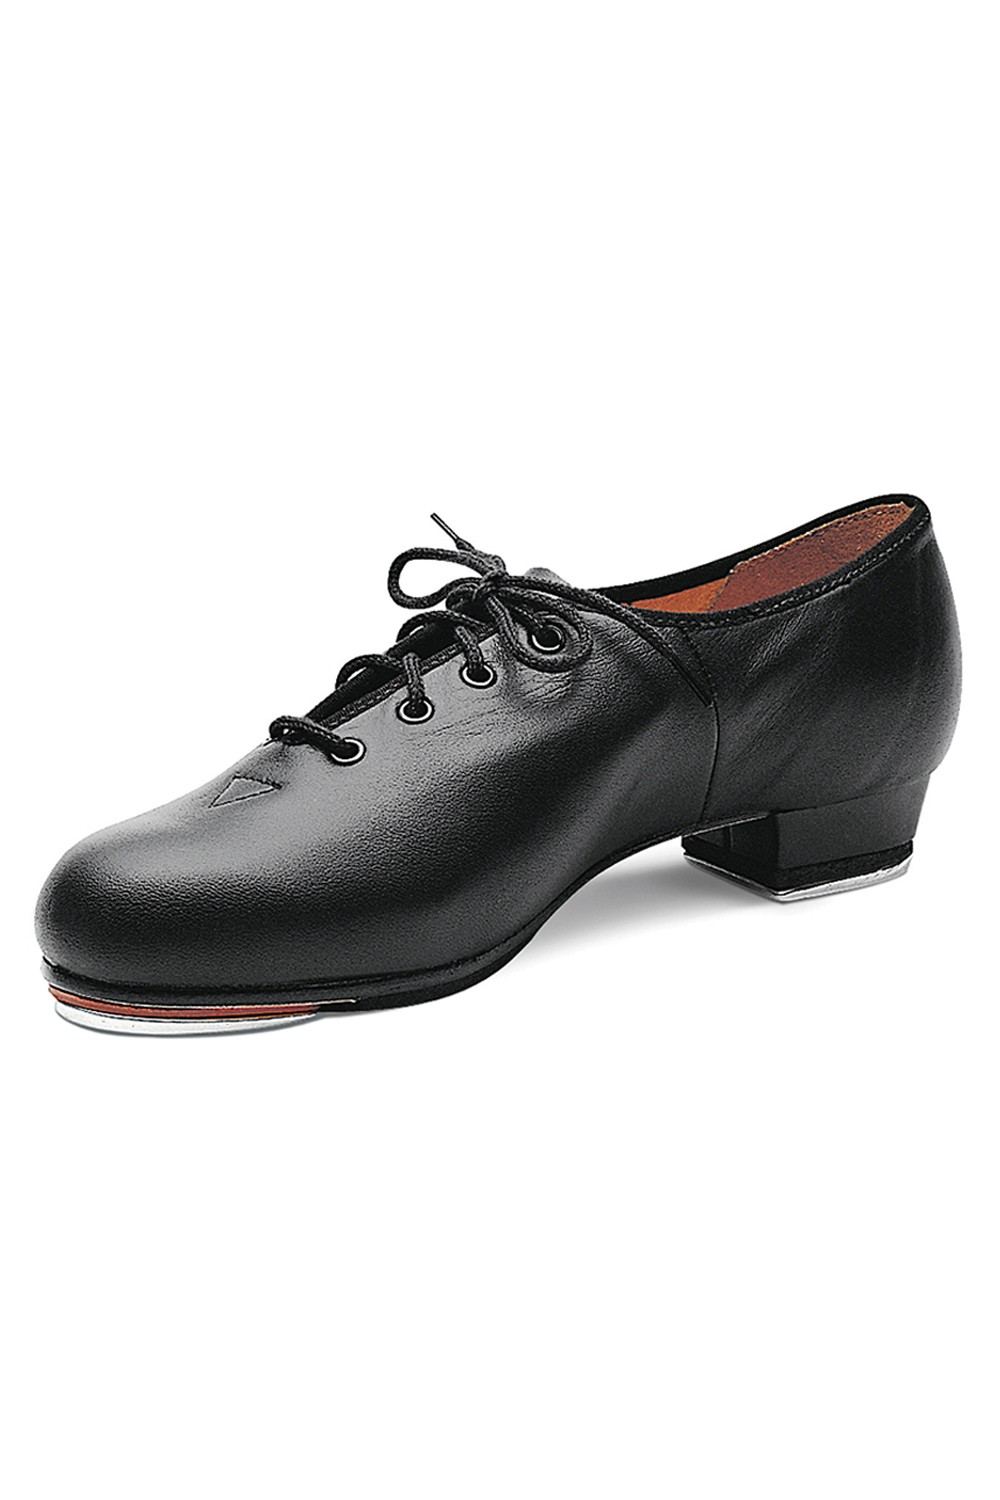 Jazz Tap - Homme Men's Tap Shoes